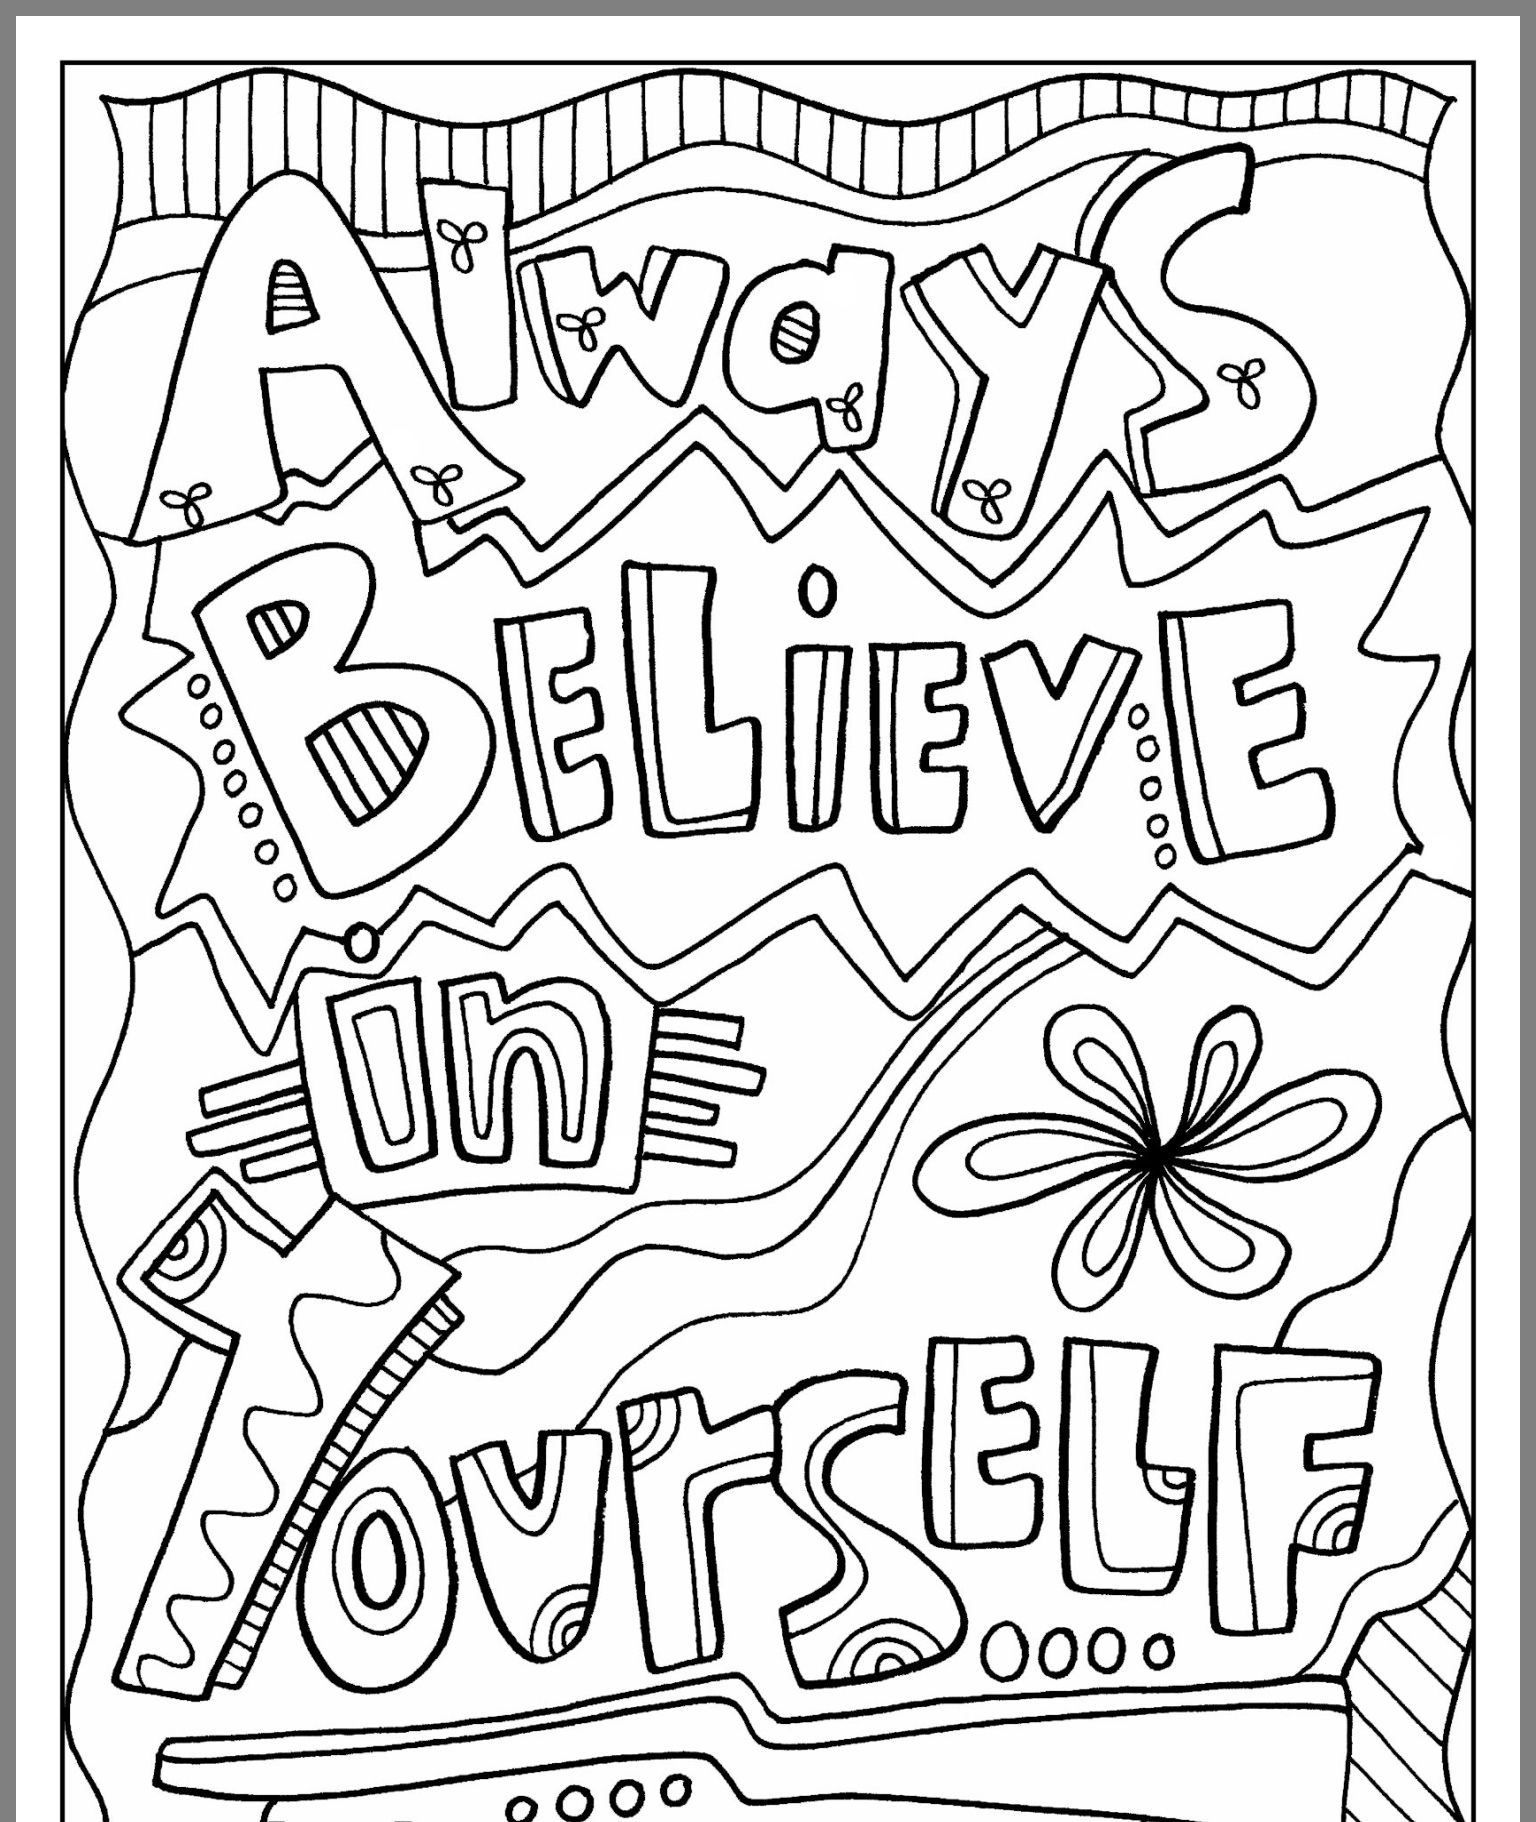 Pin By Angela Walker On Science Social Studies Quote Coloring Pages School Coloring Pages Coloring Pages Inspirational